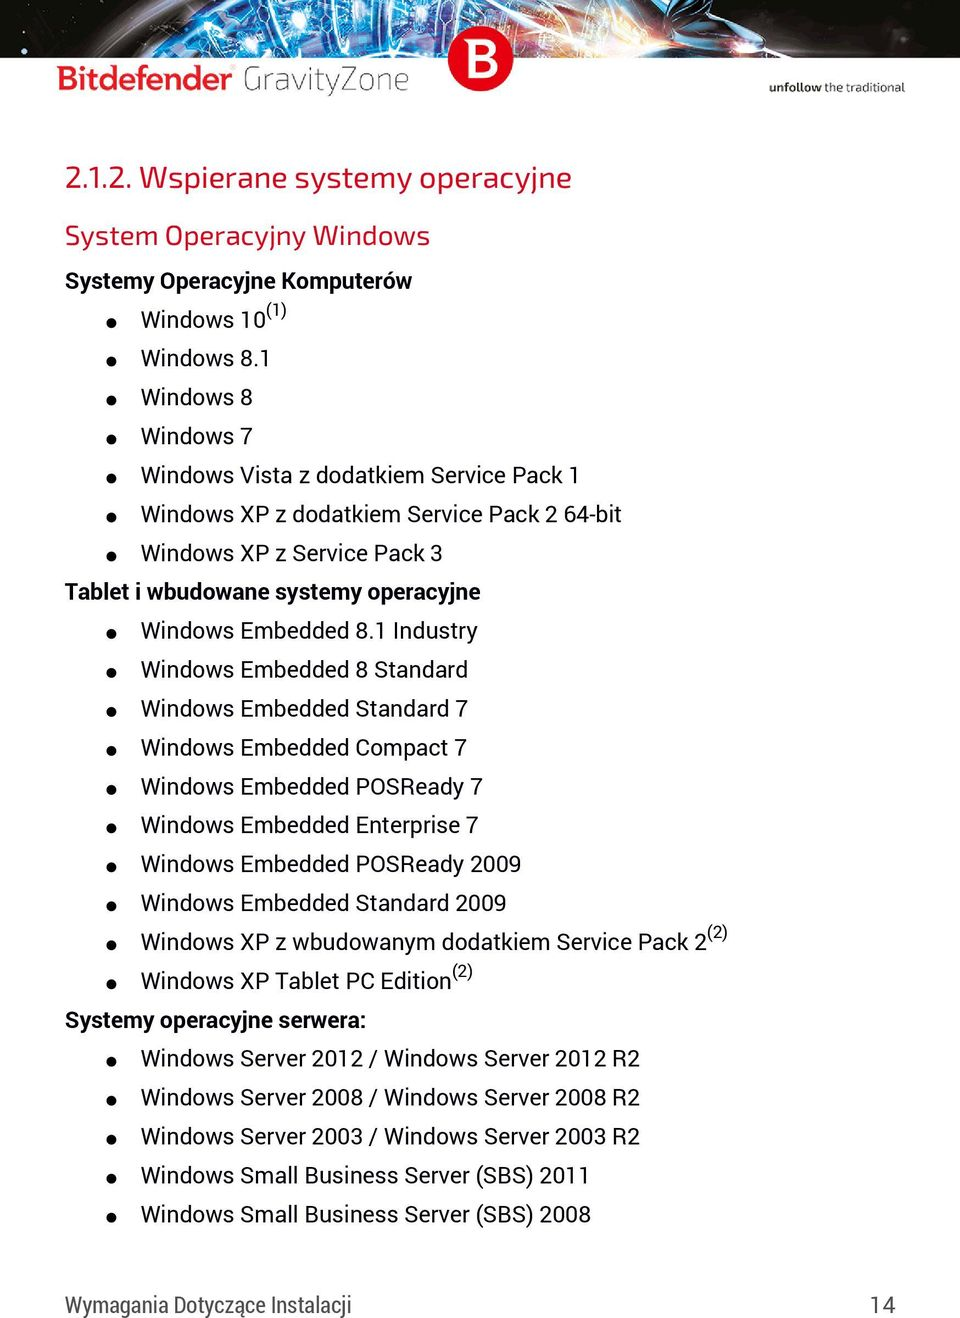 1 Industry Windows Embedded 8 Standard Windows Embedded Standard 7 Windows Embedded Compact 7 Windows Embedded POSReady 7 Windows Embedded Enterprise 7 Windows Embedded POSReady 2009 Windows Embedded